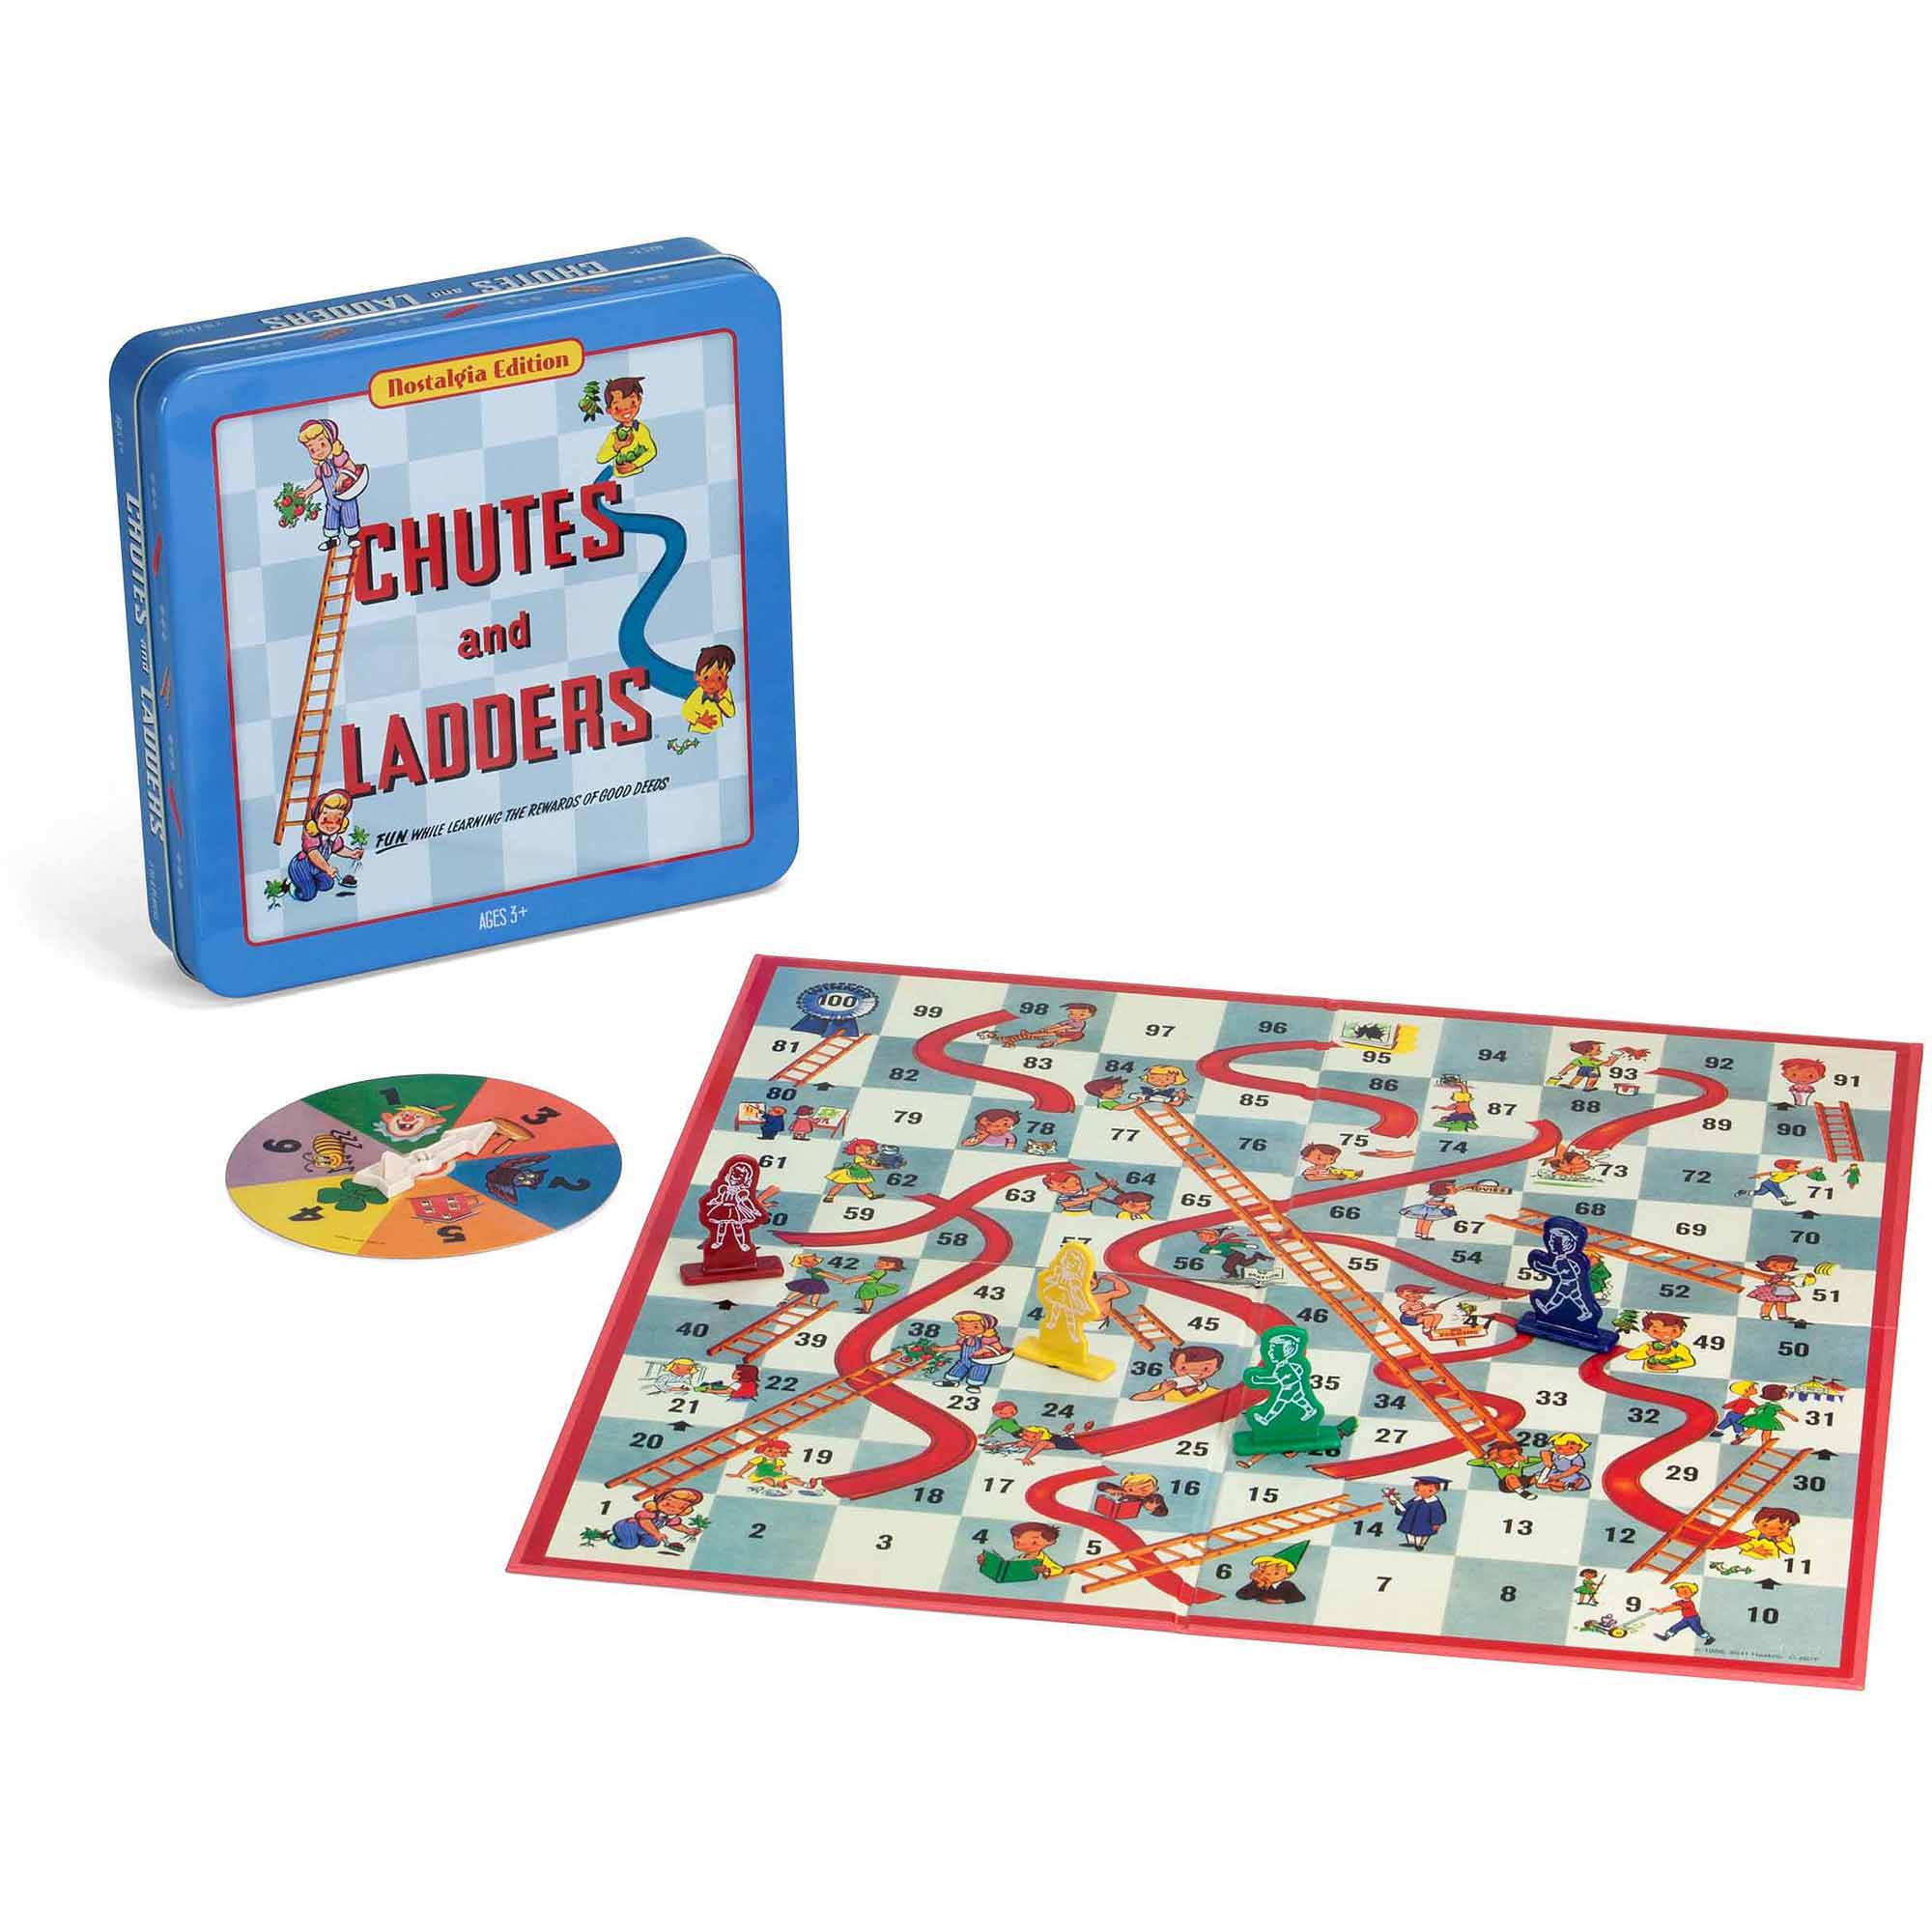 Chutes & Ladders Board Game Nostalgia Edition Game Tin